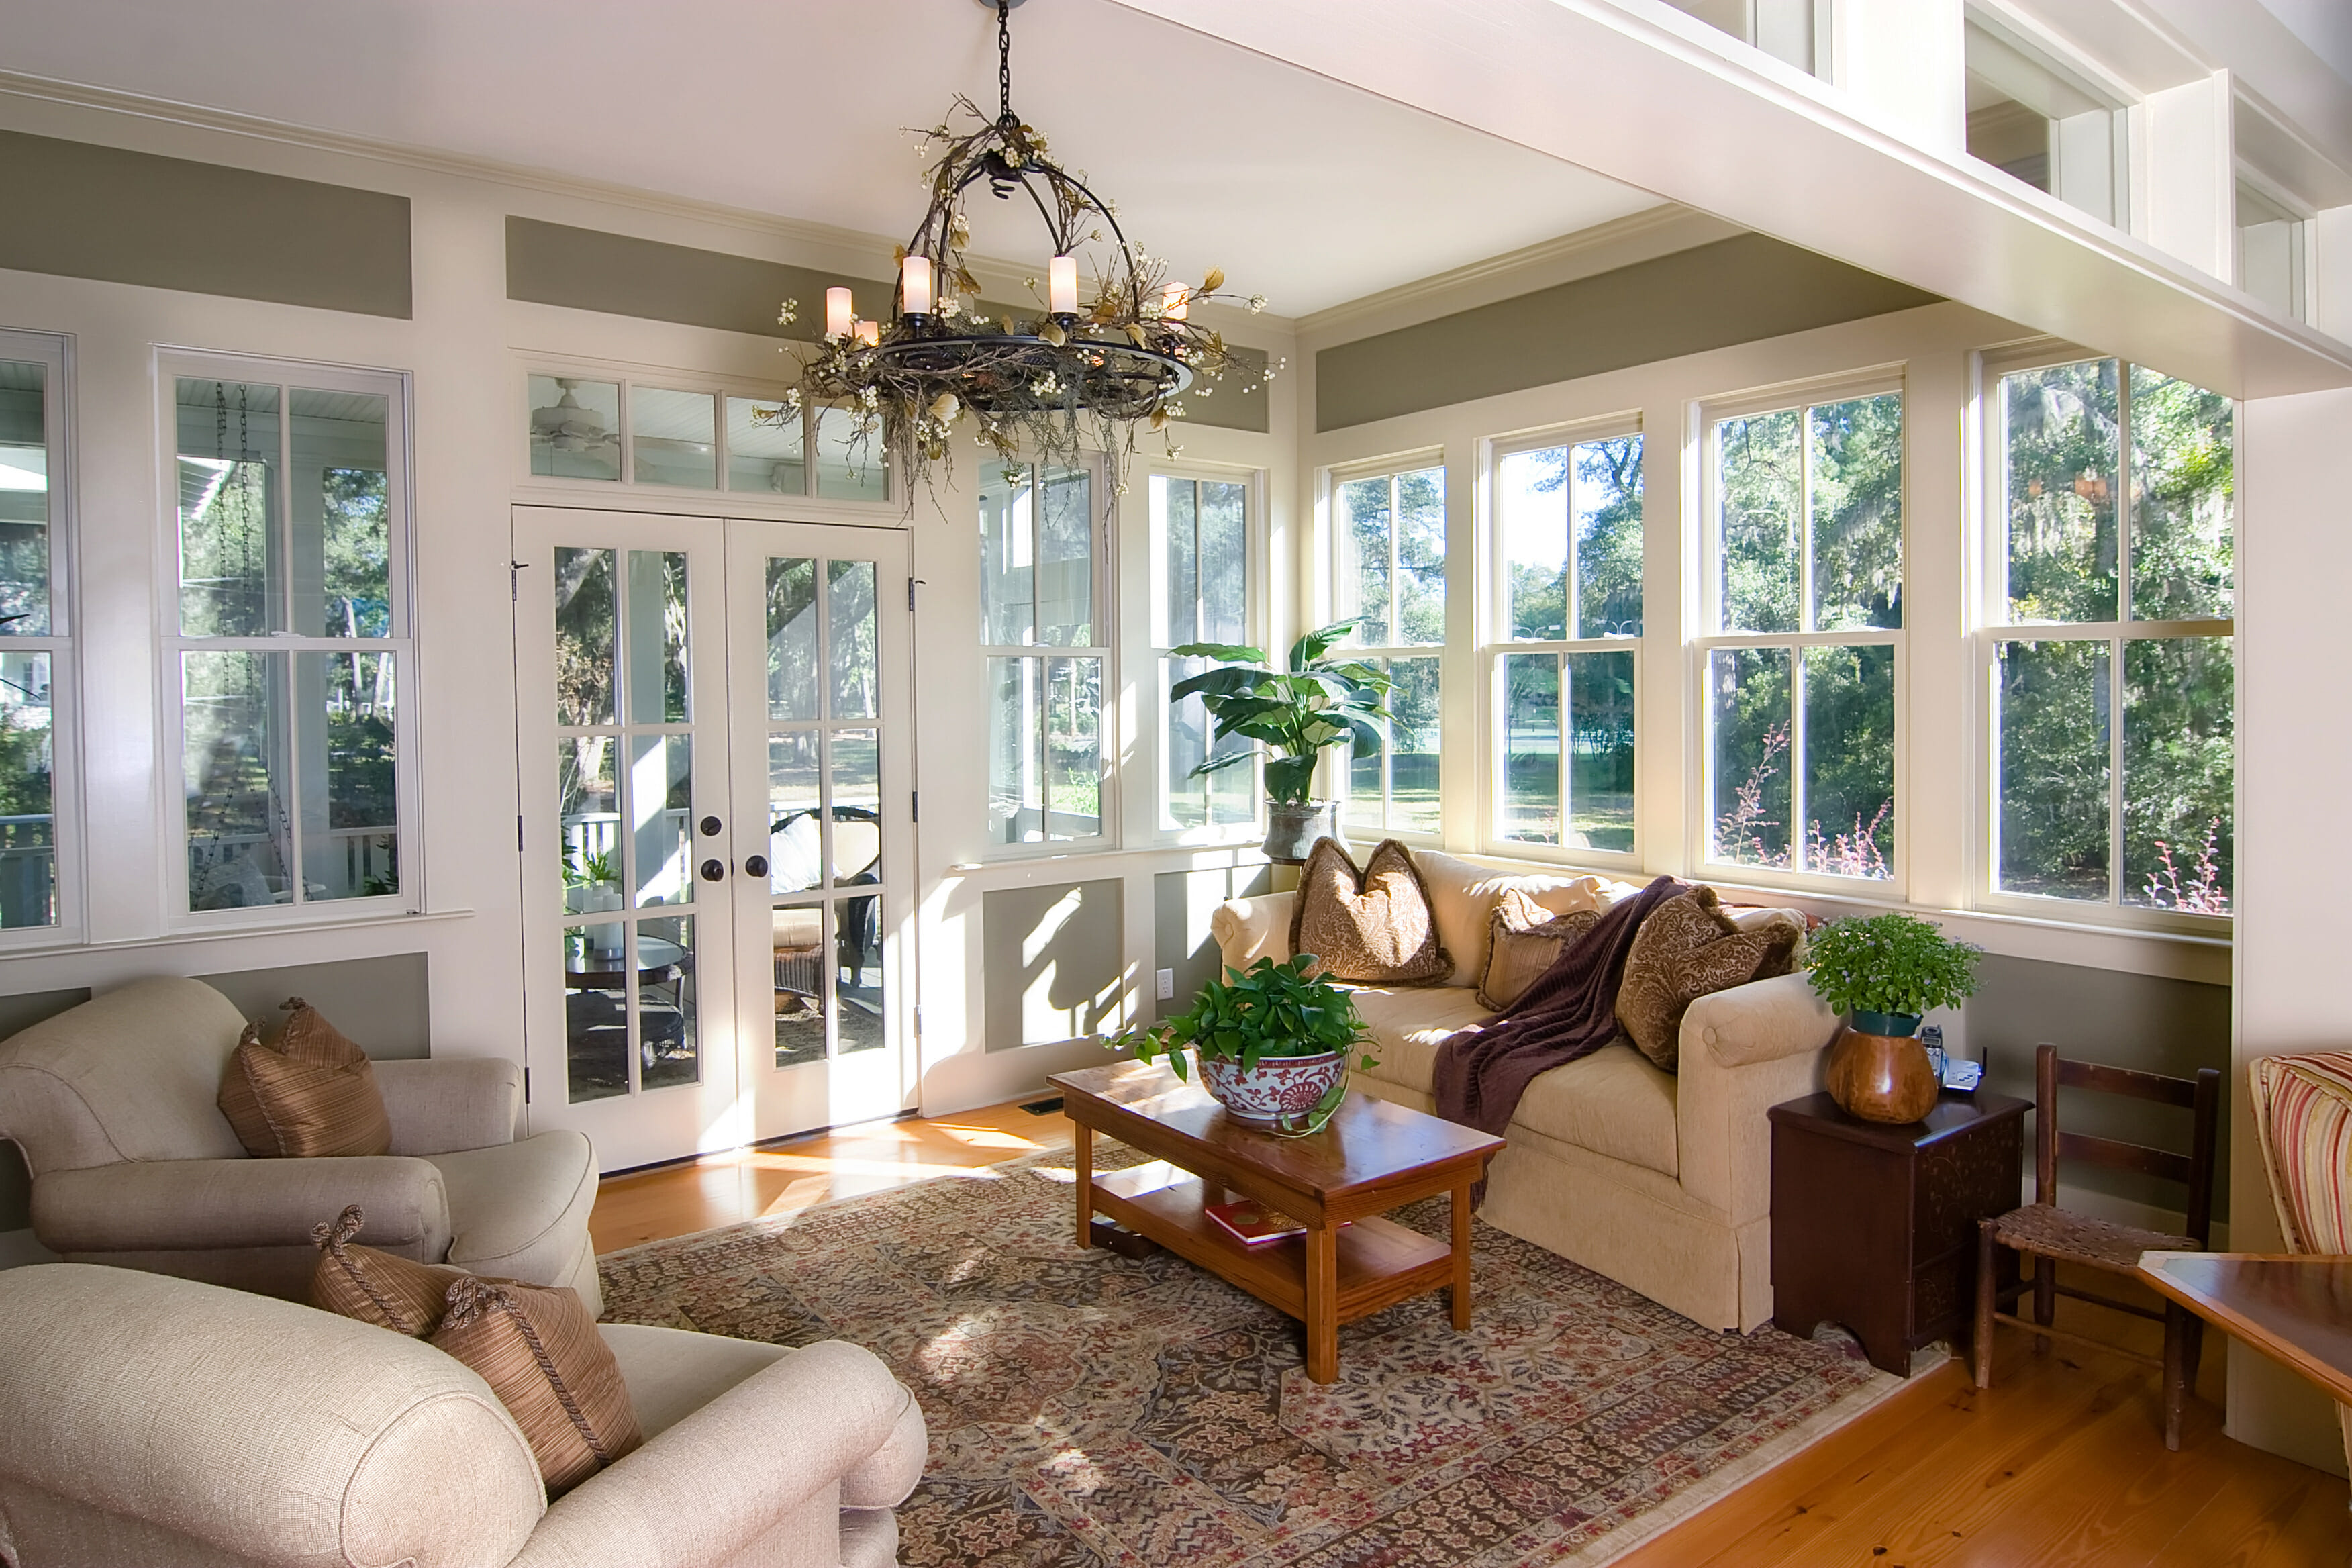 Sunroom Decorating Ideas - Modernize